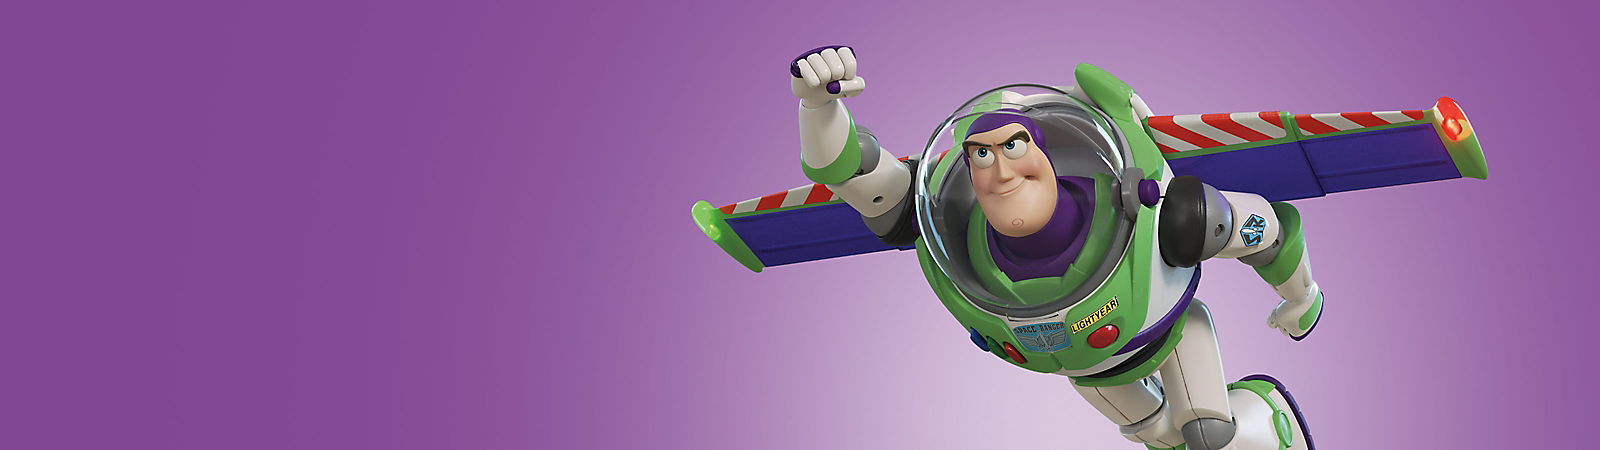 Background image of Buzz Lightyear